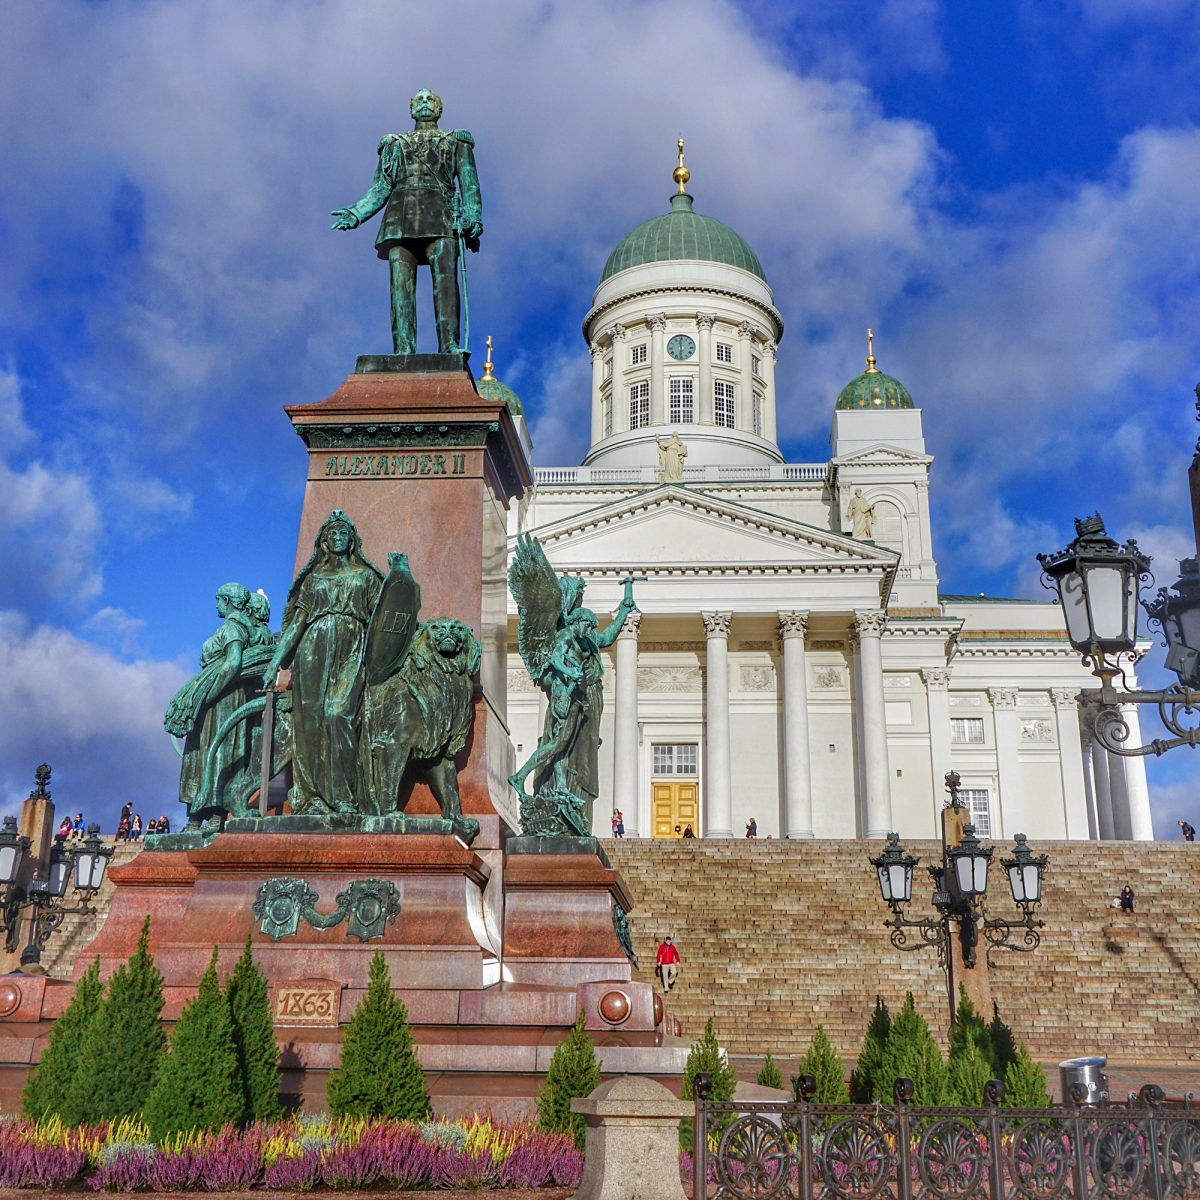 Statue of Alexander II at Senate Square